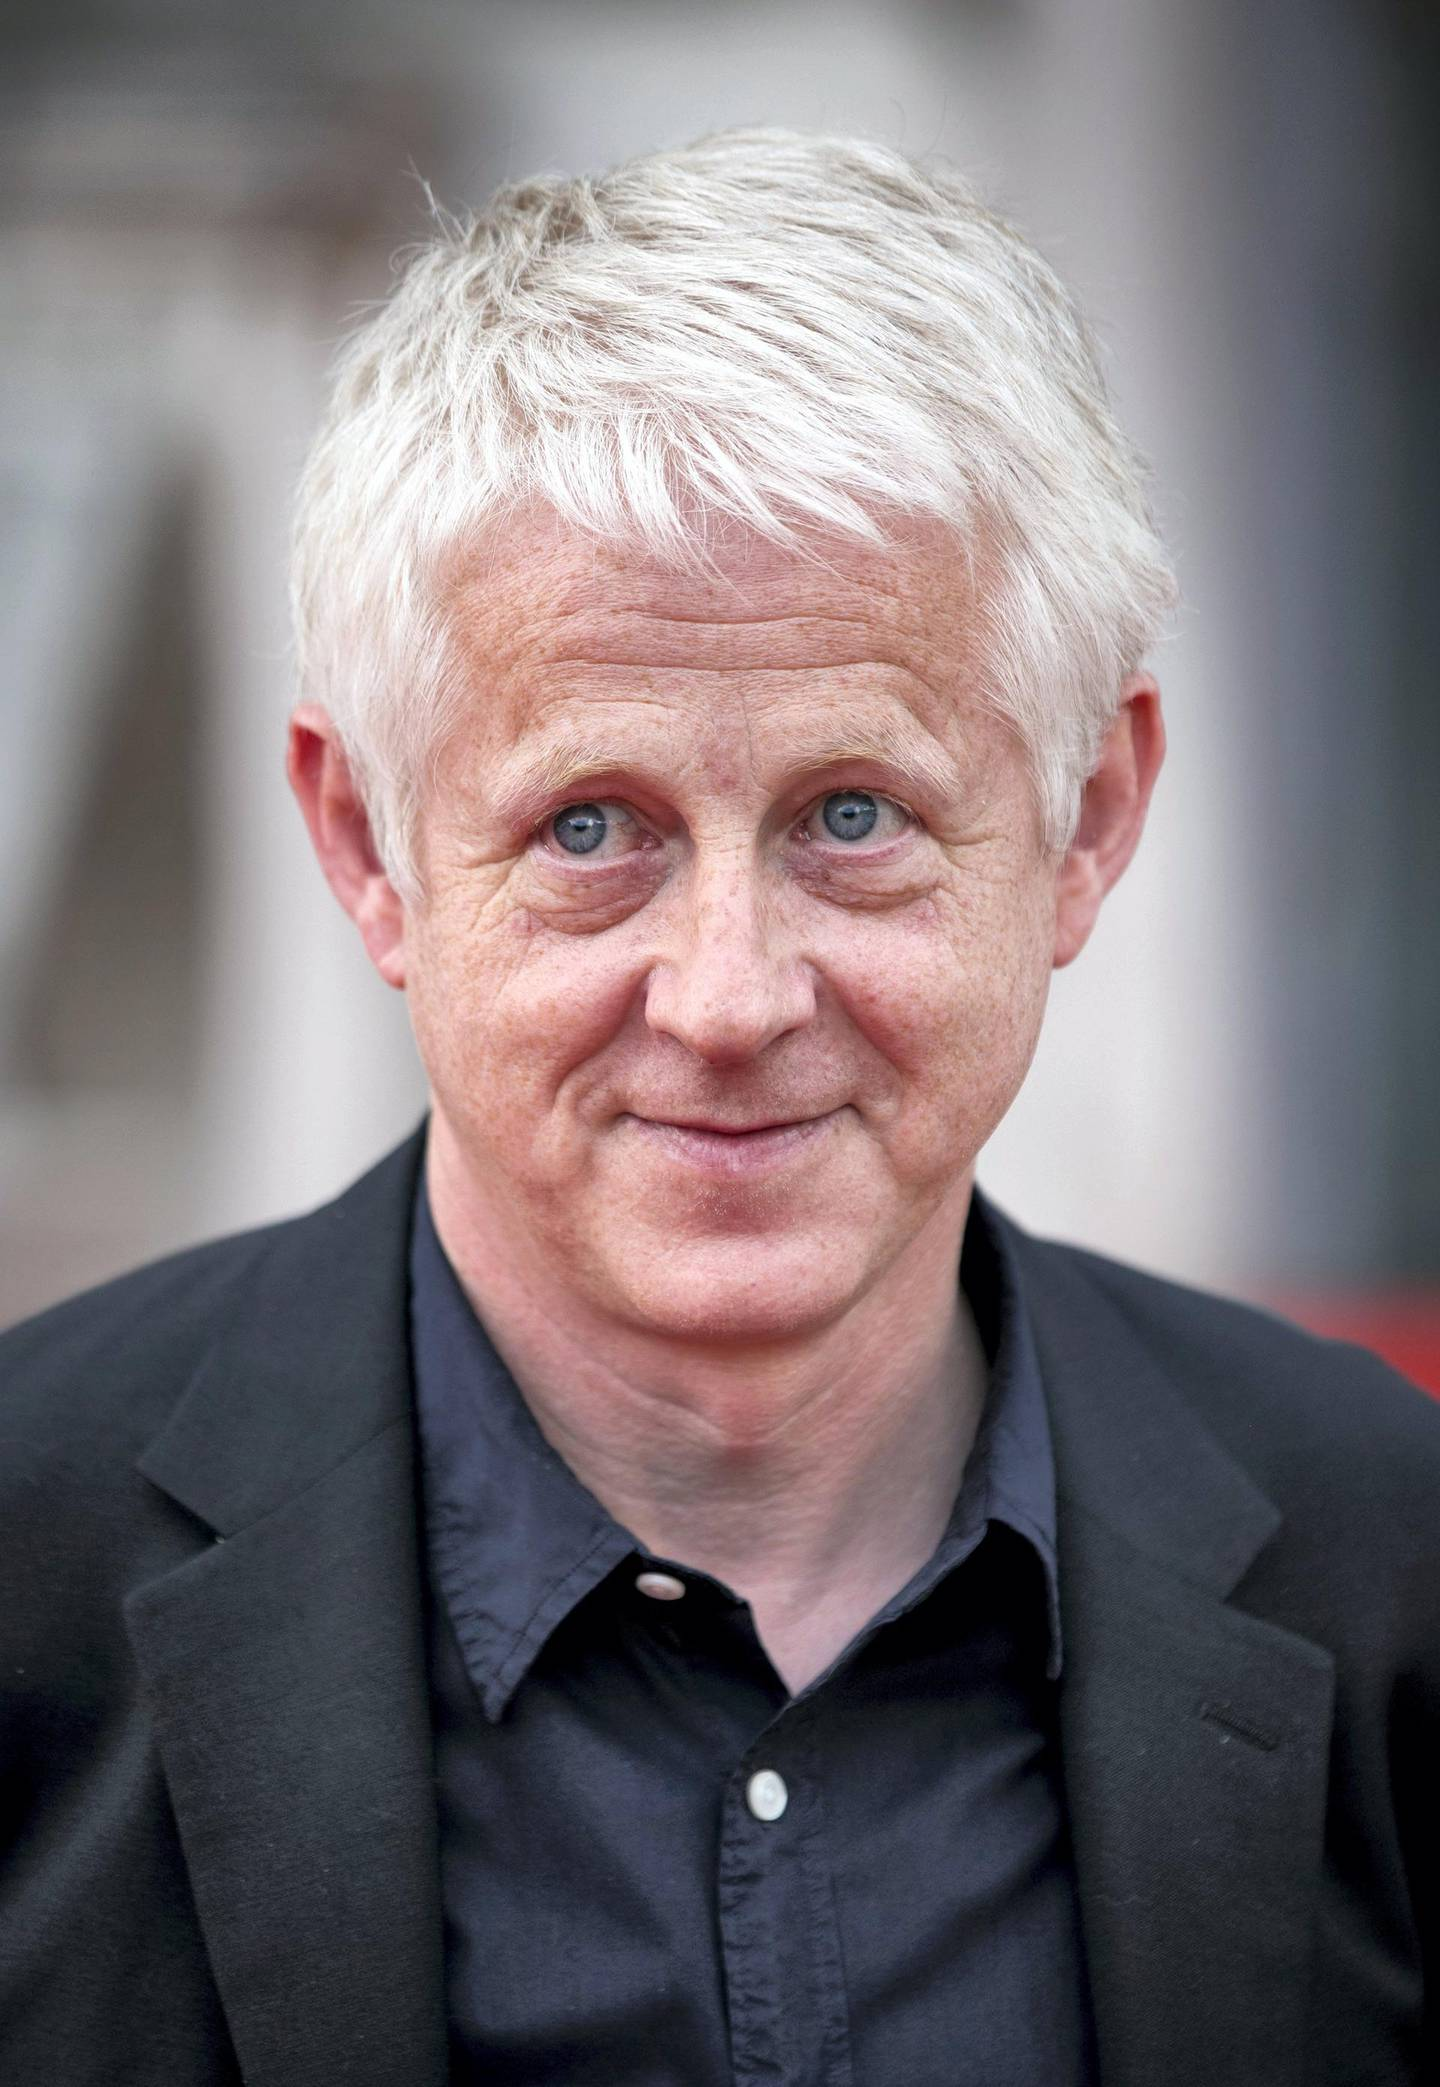 LONDON, UNITED KINGDOM - AUGUST 08: Richard Curtis attends the world premiere of 'About Time' at Somerset House on August 8, 2013 in London, England. (Photo by John Phillips/UK Press via Getty Images)